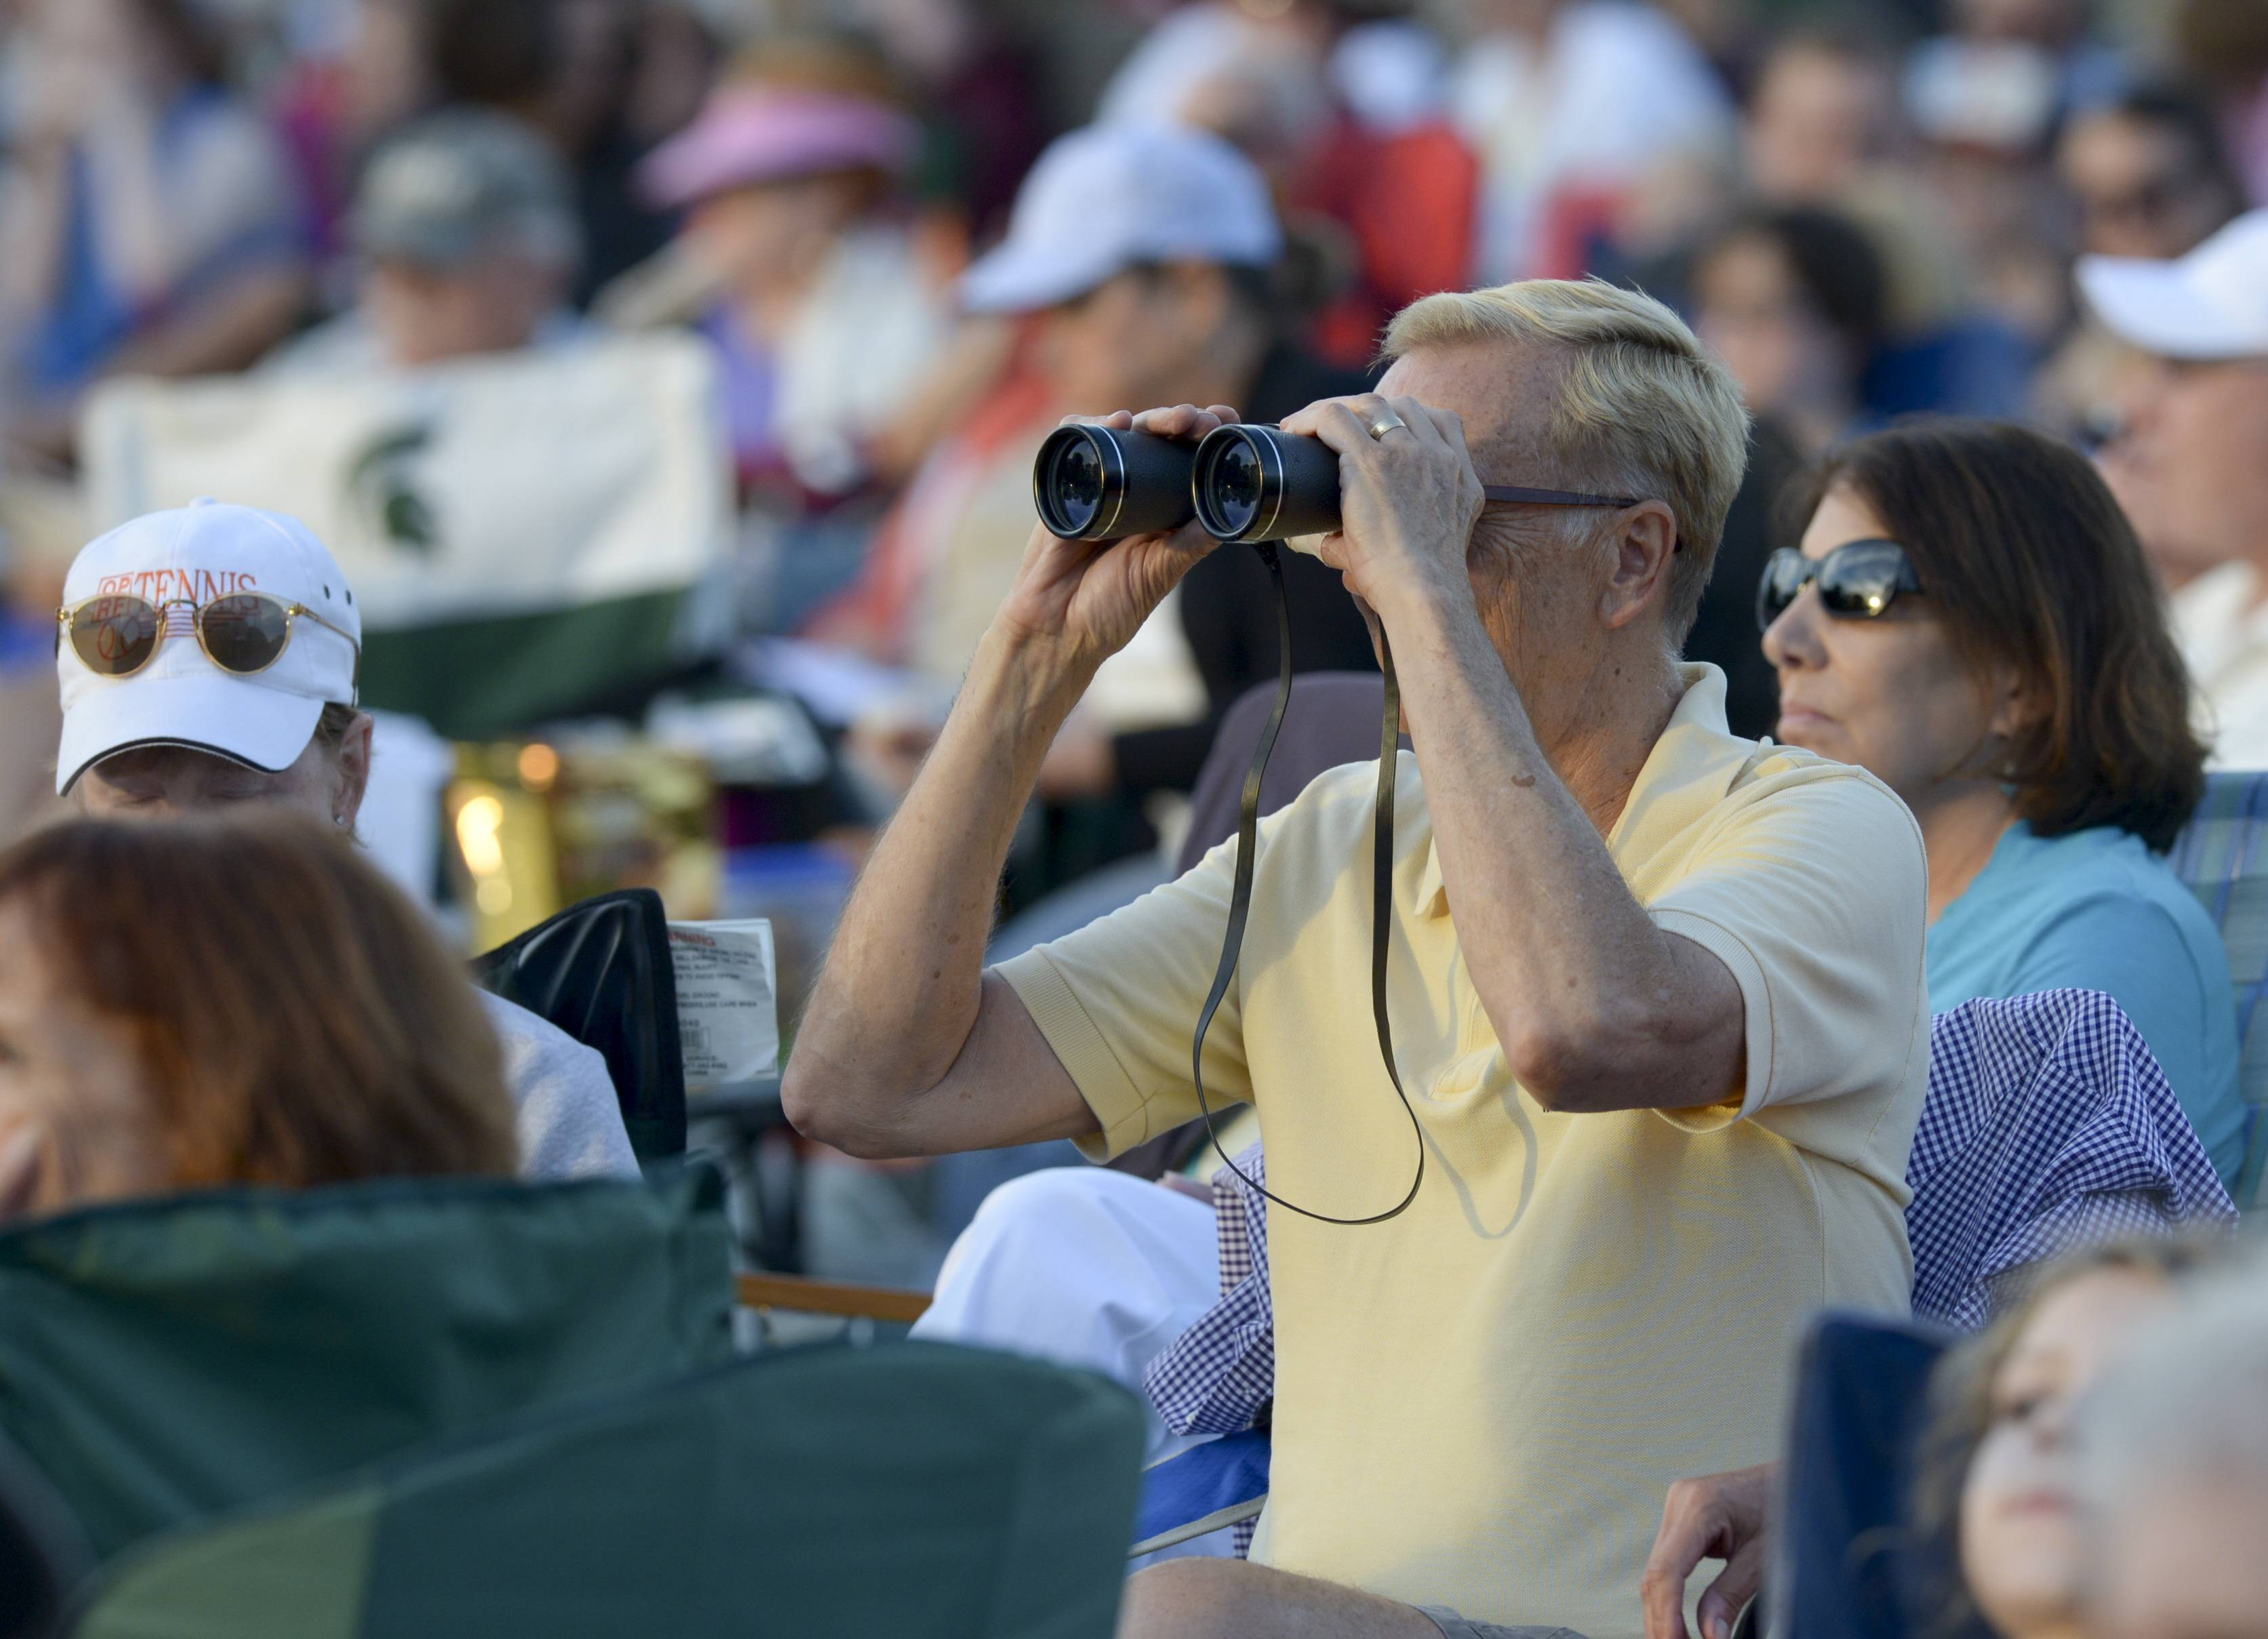 Mark Black/mblack@dailyherald.comTed Steiskal of Hillside uses a pair of binoculars to get a closer look while attending the Chicago Symphony Orchestra's performance Thursday night at The Morton Arboretum in Lisle.